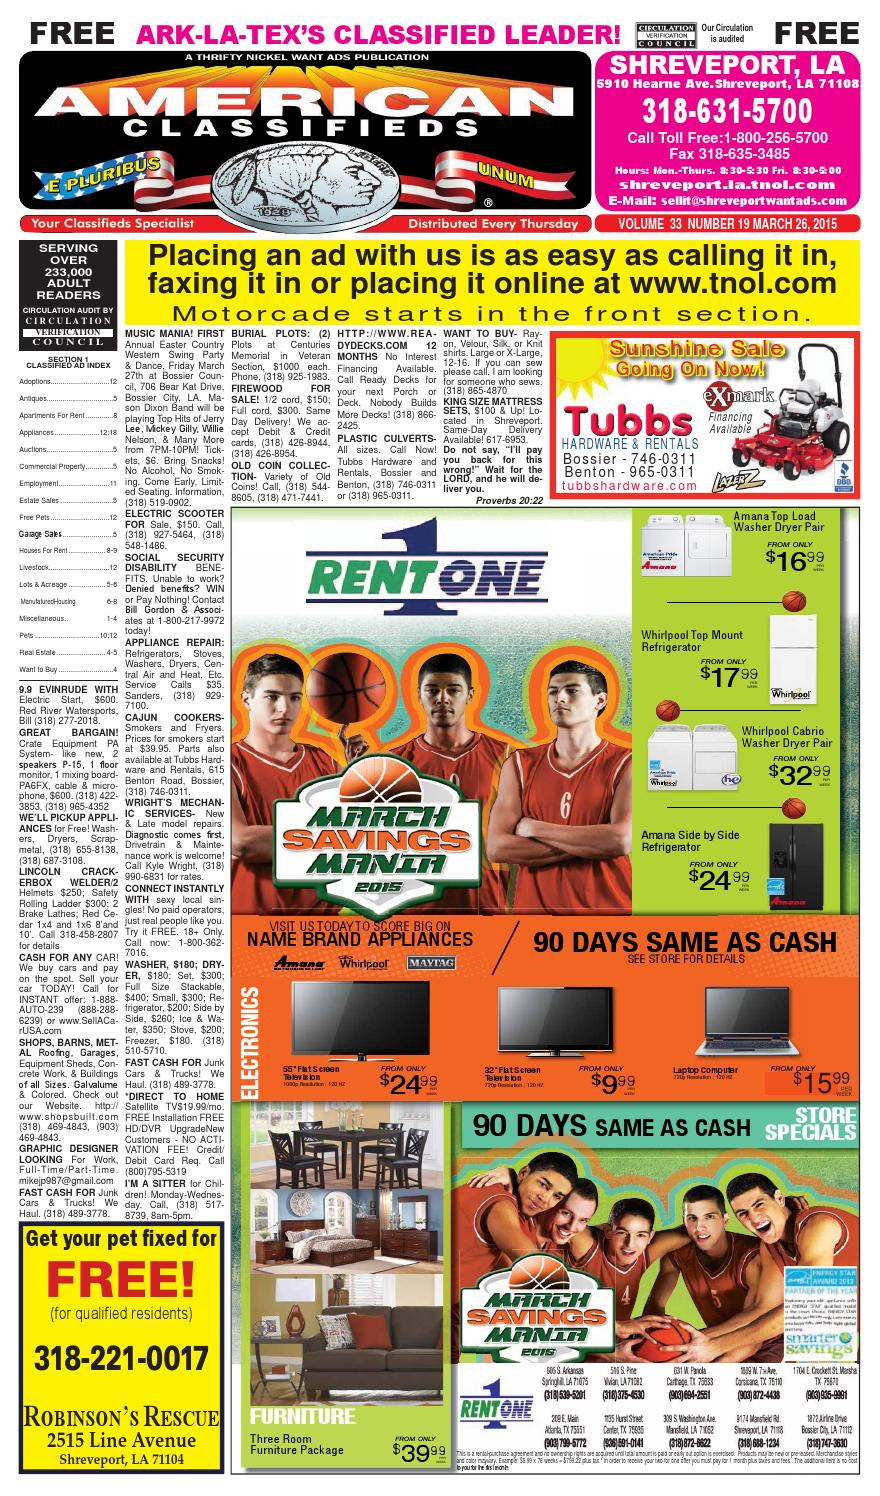 American classifieds shreveport la march 26th 2015 by shreveport american classifieds issuu